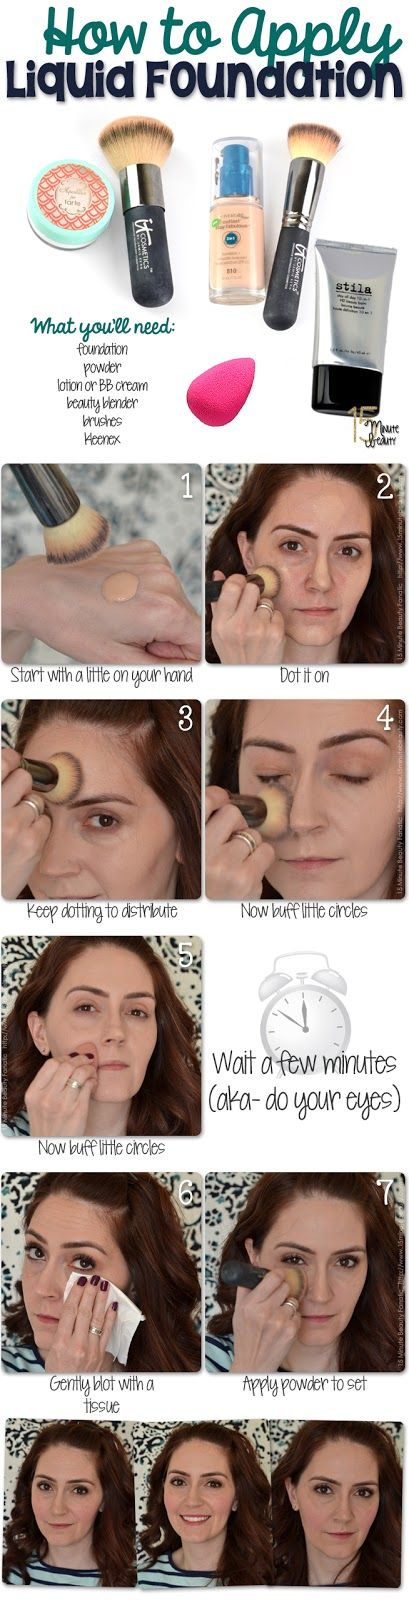 Foundation method